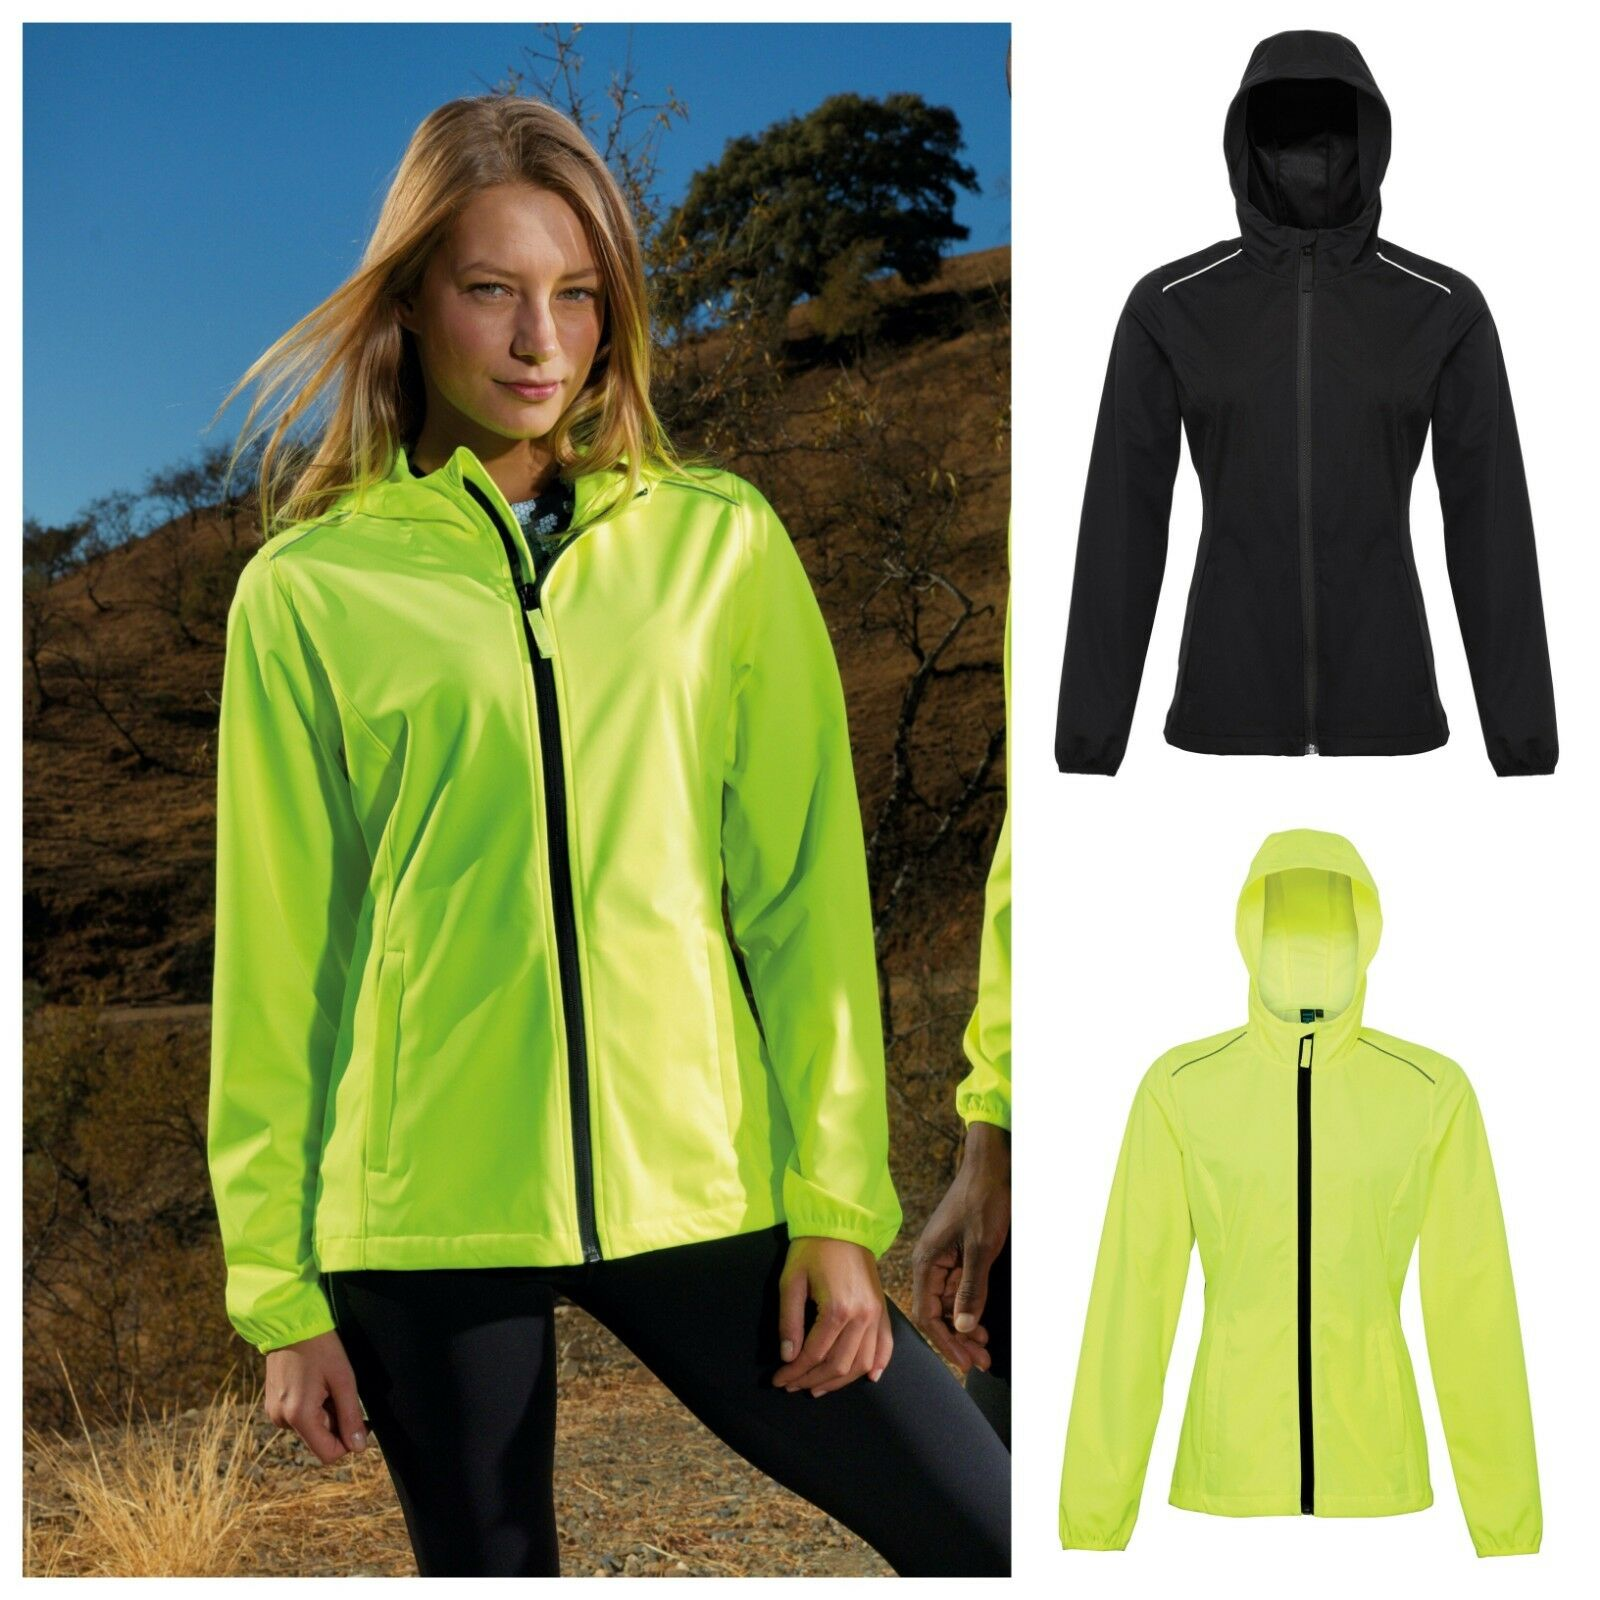 Womens Ladies Light Thin Reflect Sports Running Softshell Jacket Coat Soft Shell